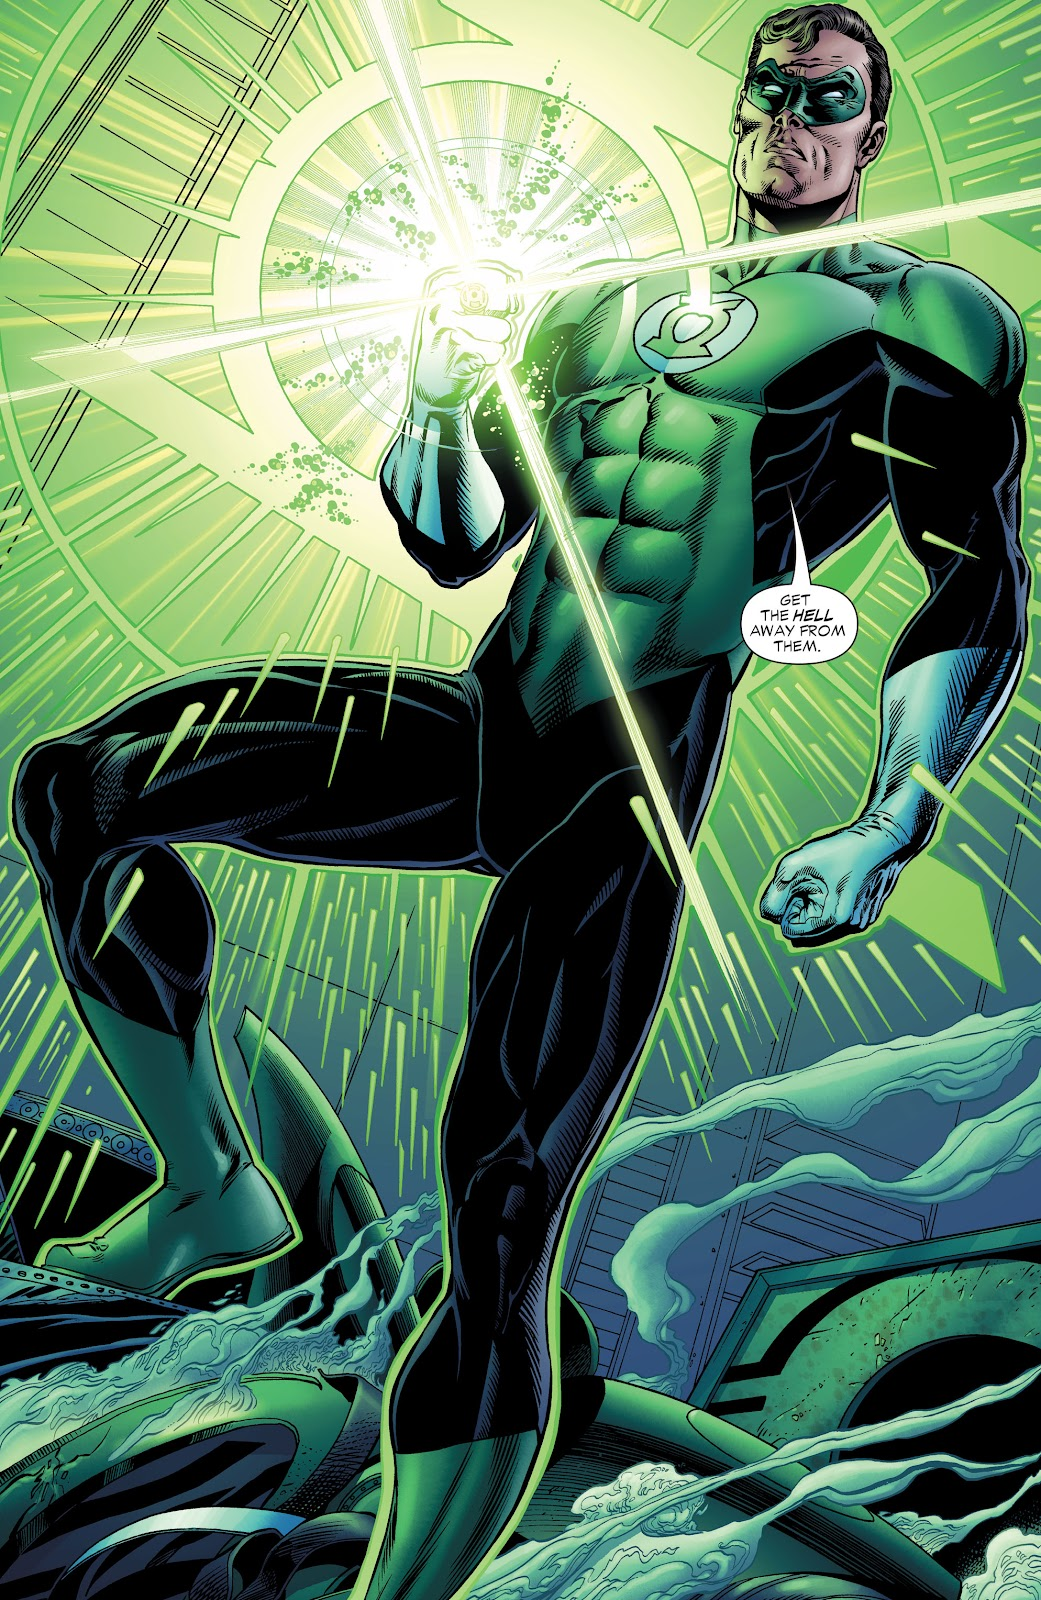 Read online Green Lantern by Geoff Johns comic -  Issue # TPB 1 (Part 2) - 11